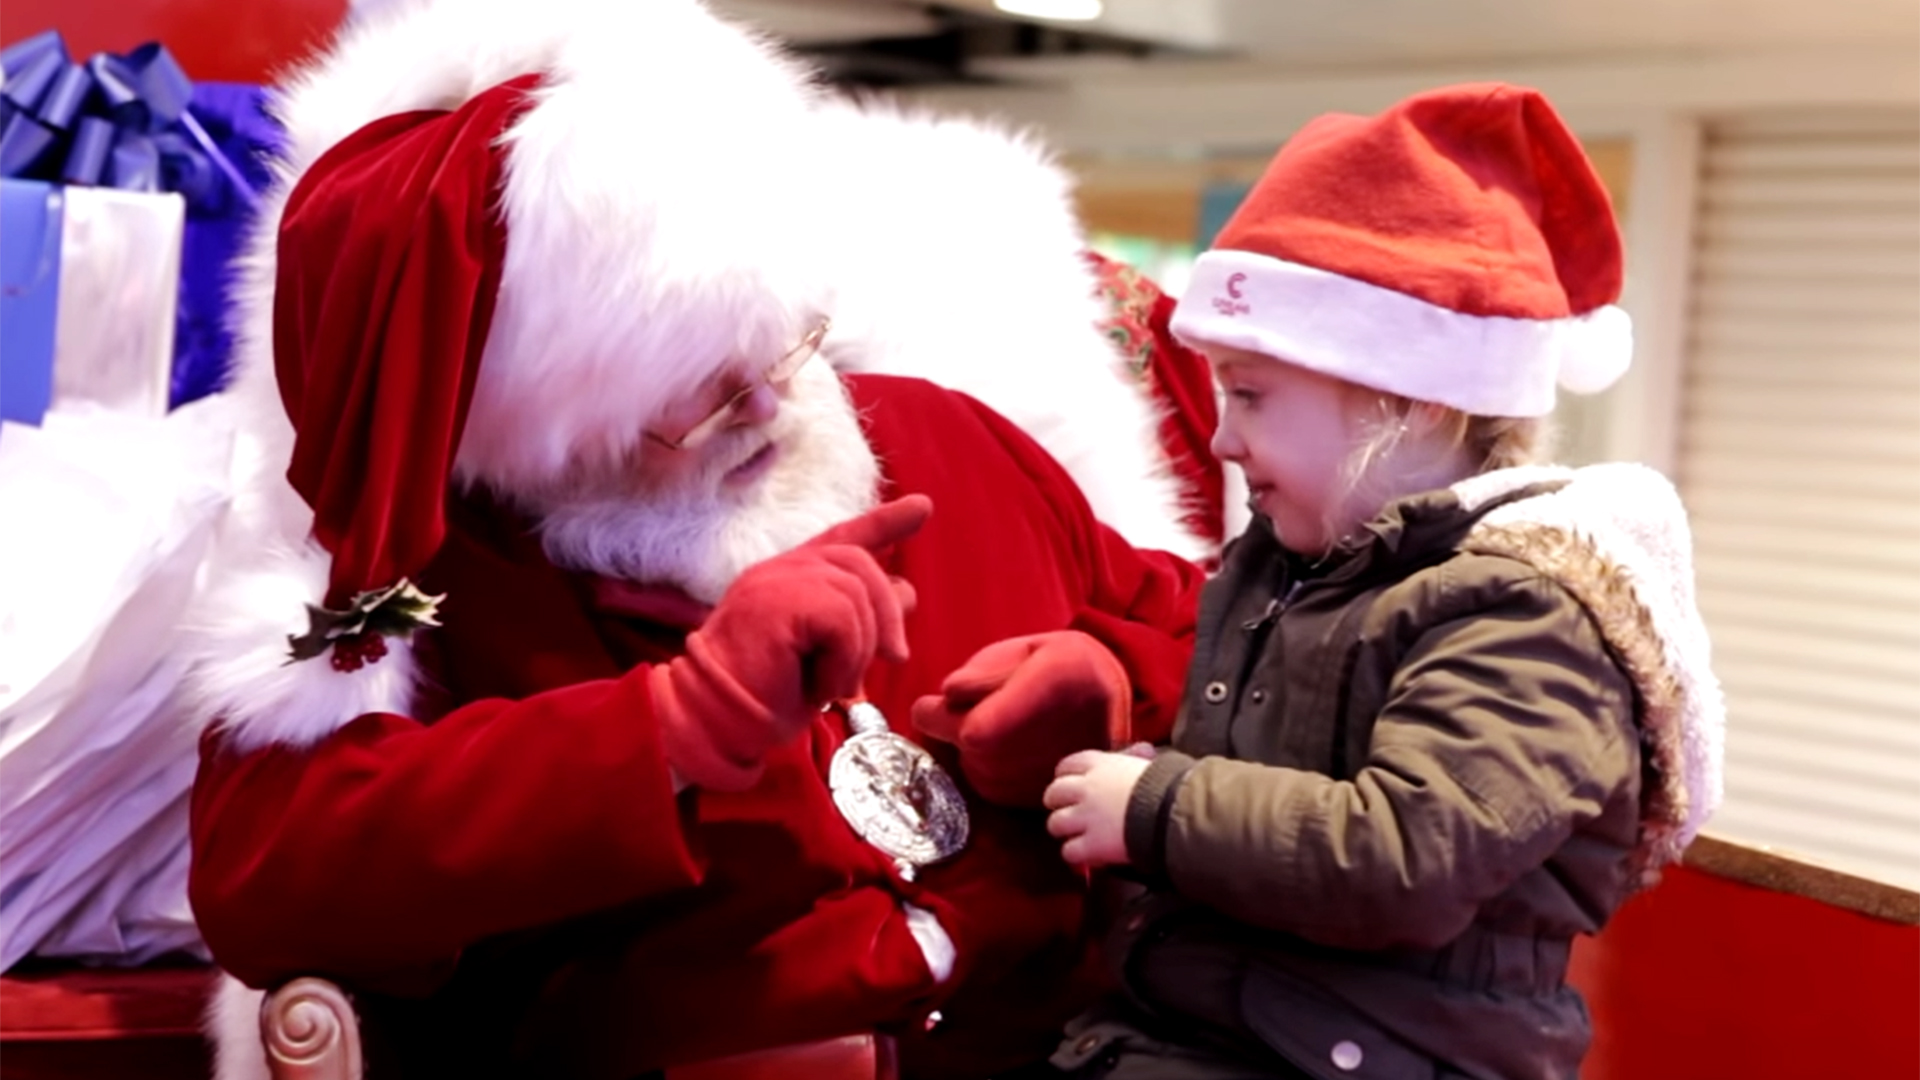 mall santa stuns onlookers by using sign language to speak with